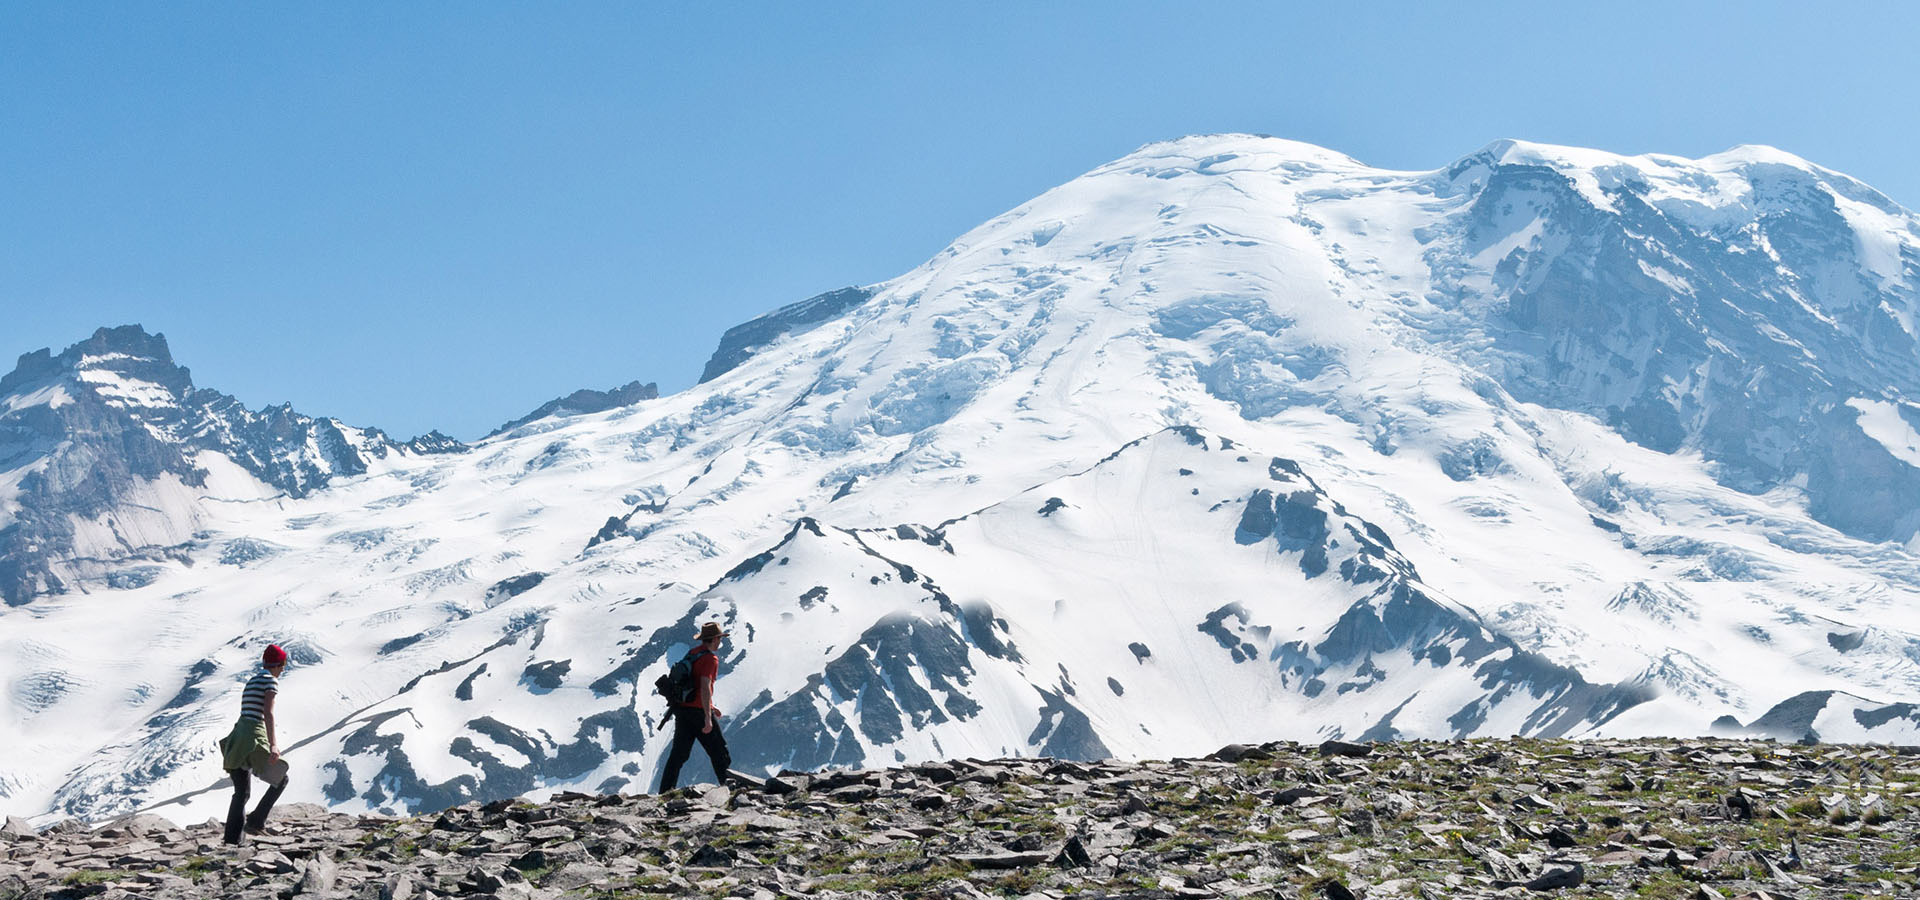 Mount Rainier Lodging Pictures To Pin On Pinterest Pinsdaddy